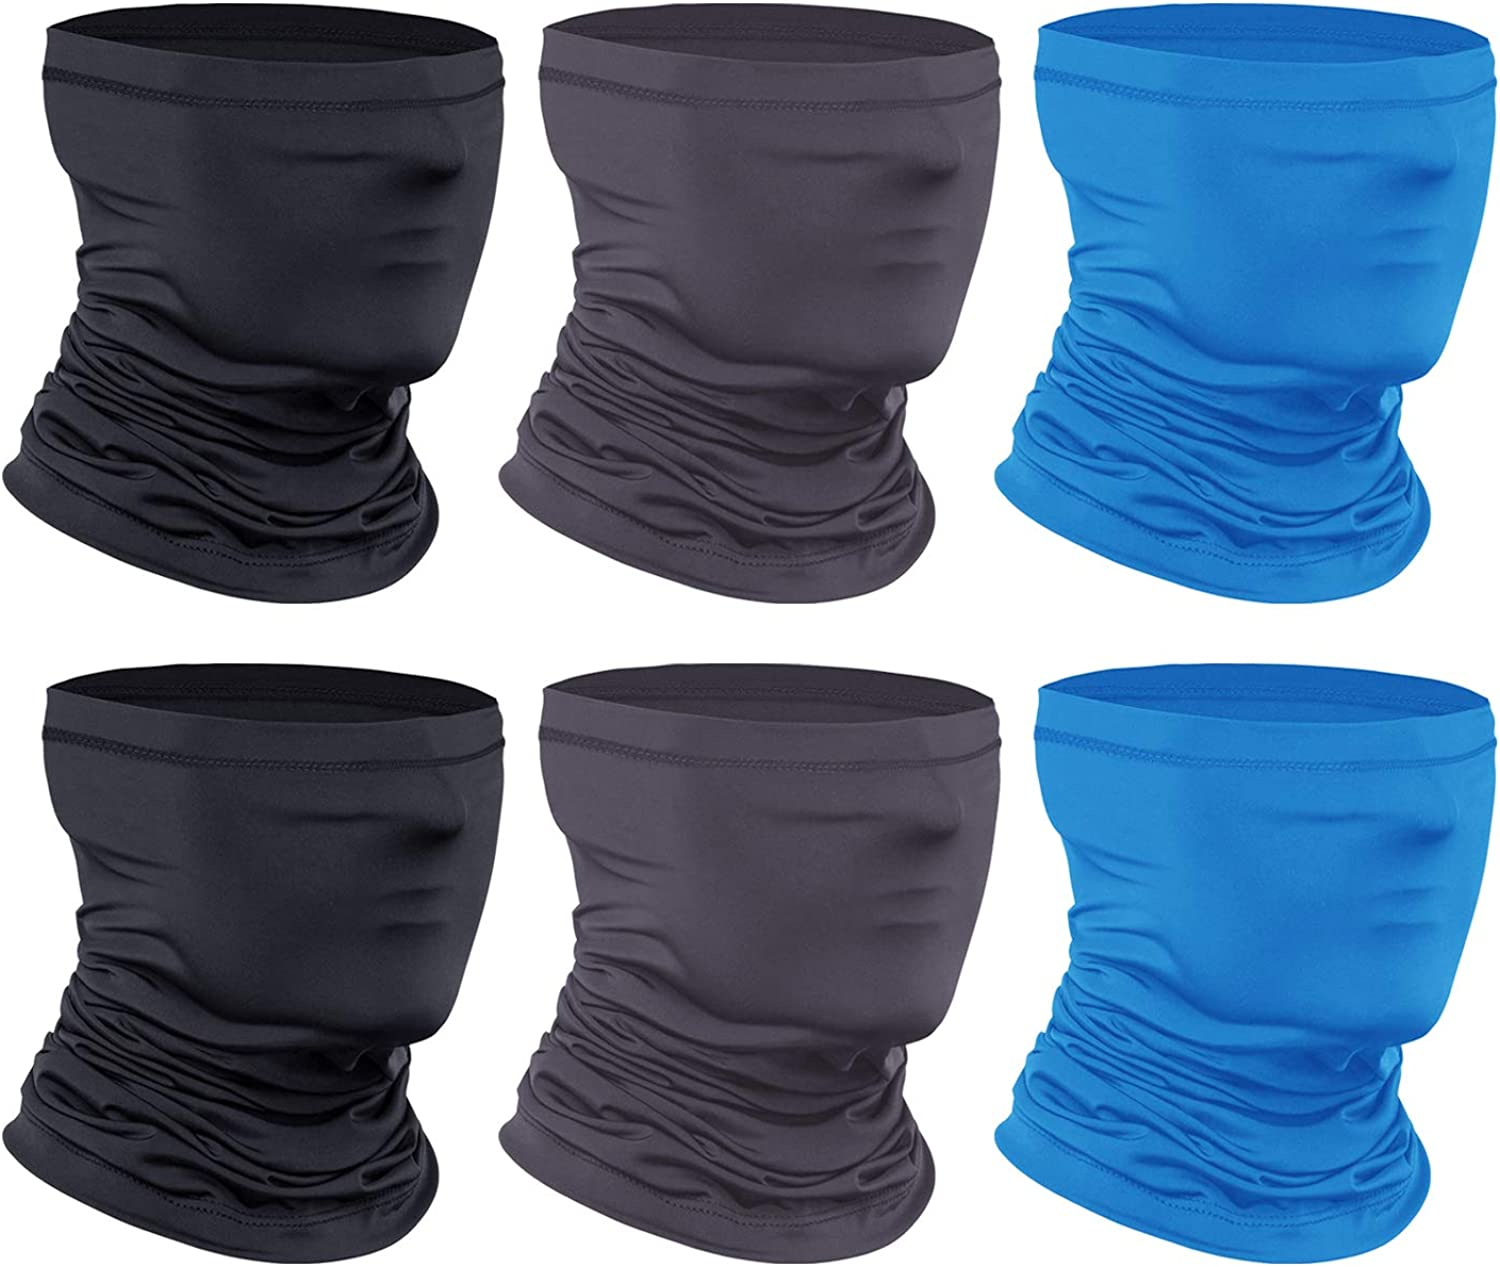 [6-Pack] Neck Gaiter Scarf, Breathable Bandana Face Mask Cooling Neck Gaiter for Men Women Cycling Hiking Fishing.